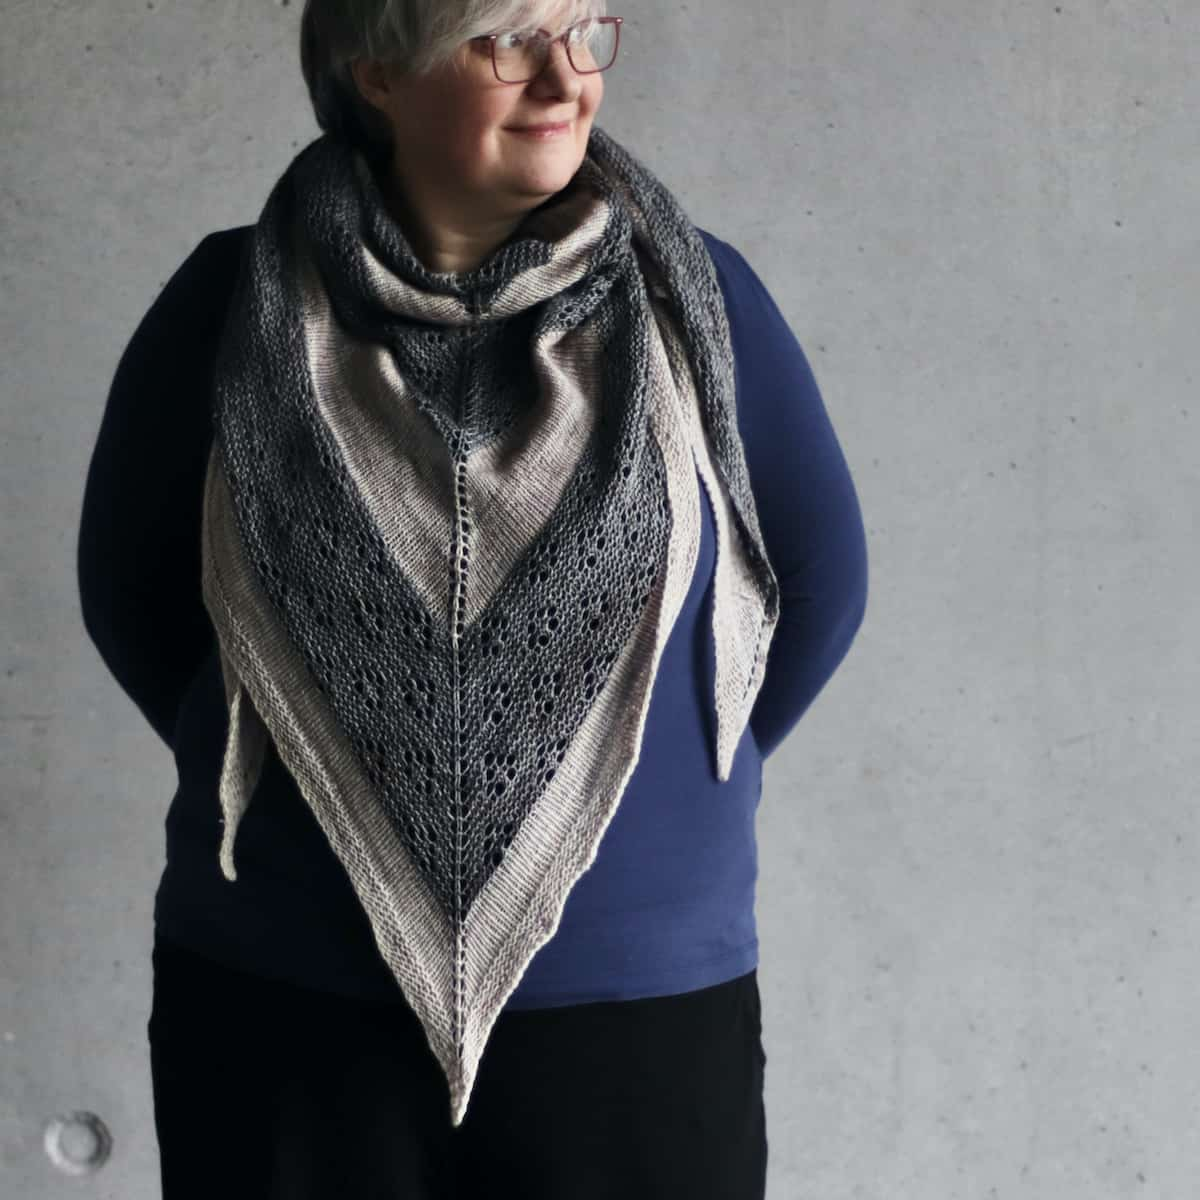 A light-skinned woman with gray hair wears a large gray striped triangle shawl bandana-style.